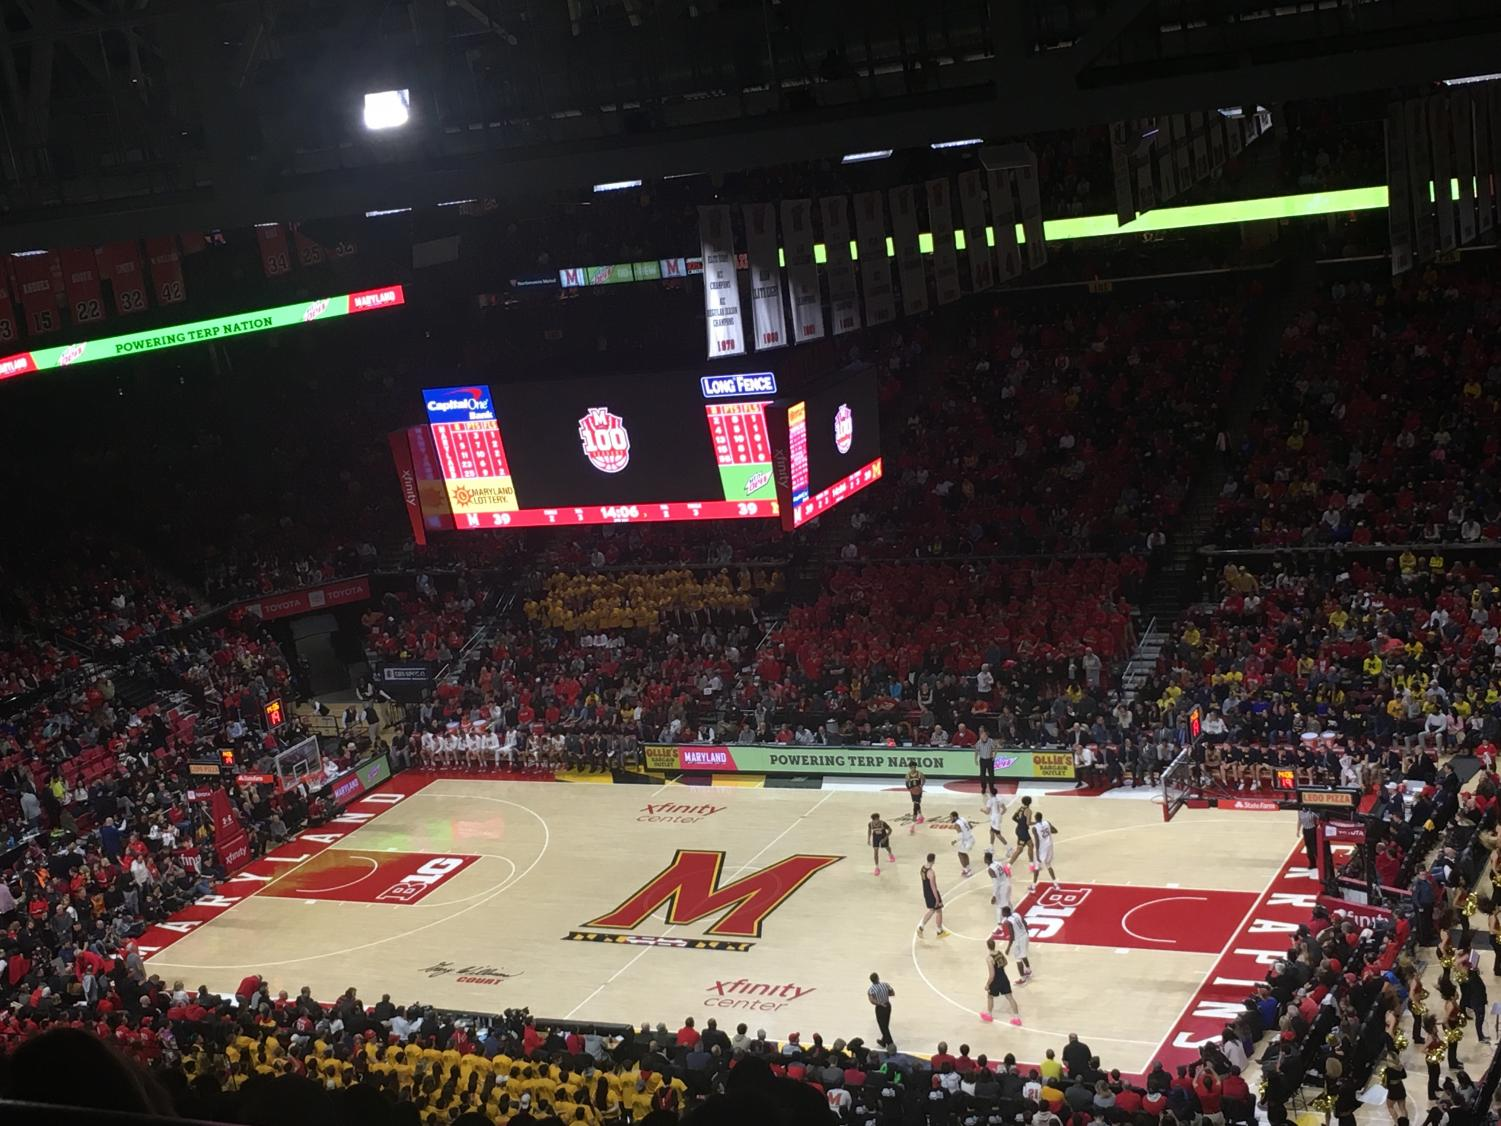 College basketball players such as the ones here in The Xfinity Center at the University of Maryland generate large revenue but don't get paid. Following the injury of Duke star Zion Williamson, debate over whether college athletes should be paid sparked up again.